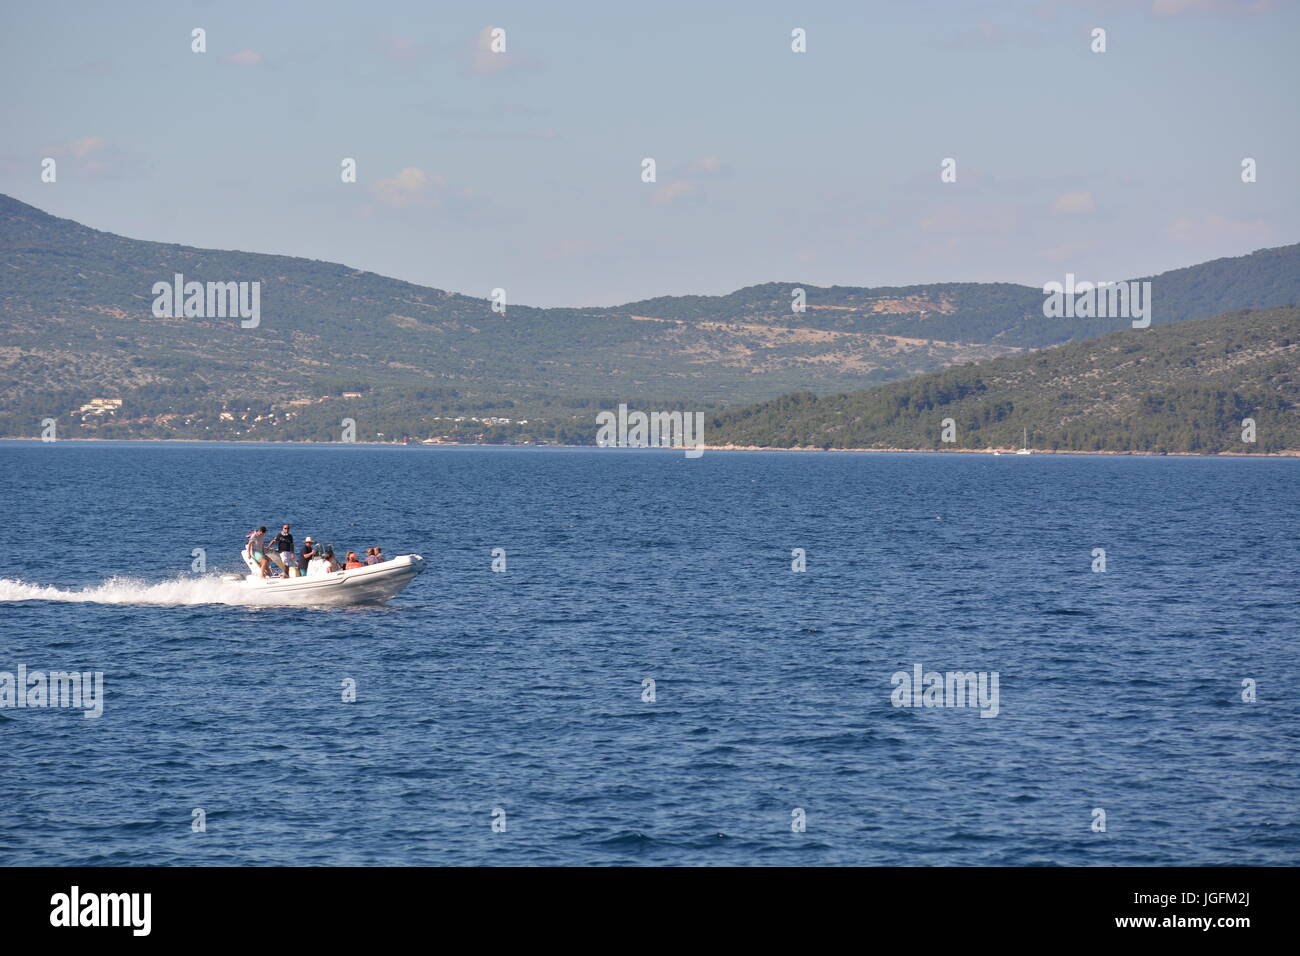 Cres, Croatia - June 18, 2017 - Motorboat near Valun on island Cres Stock Photo